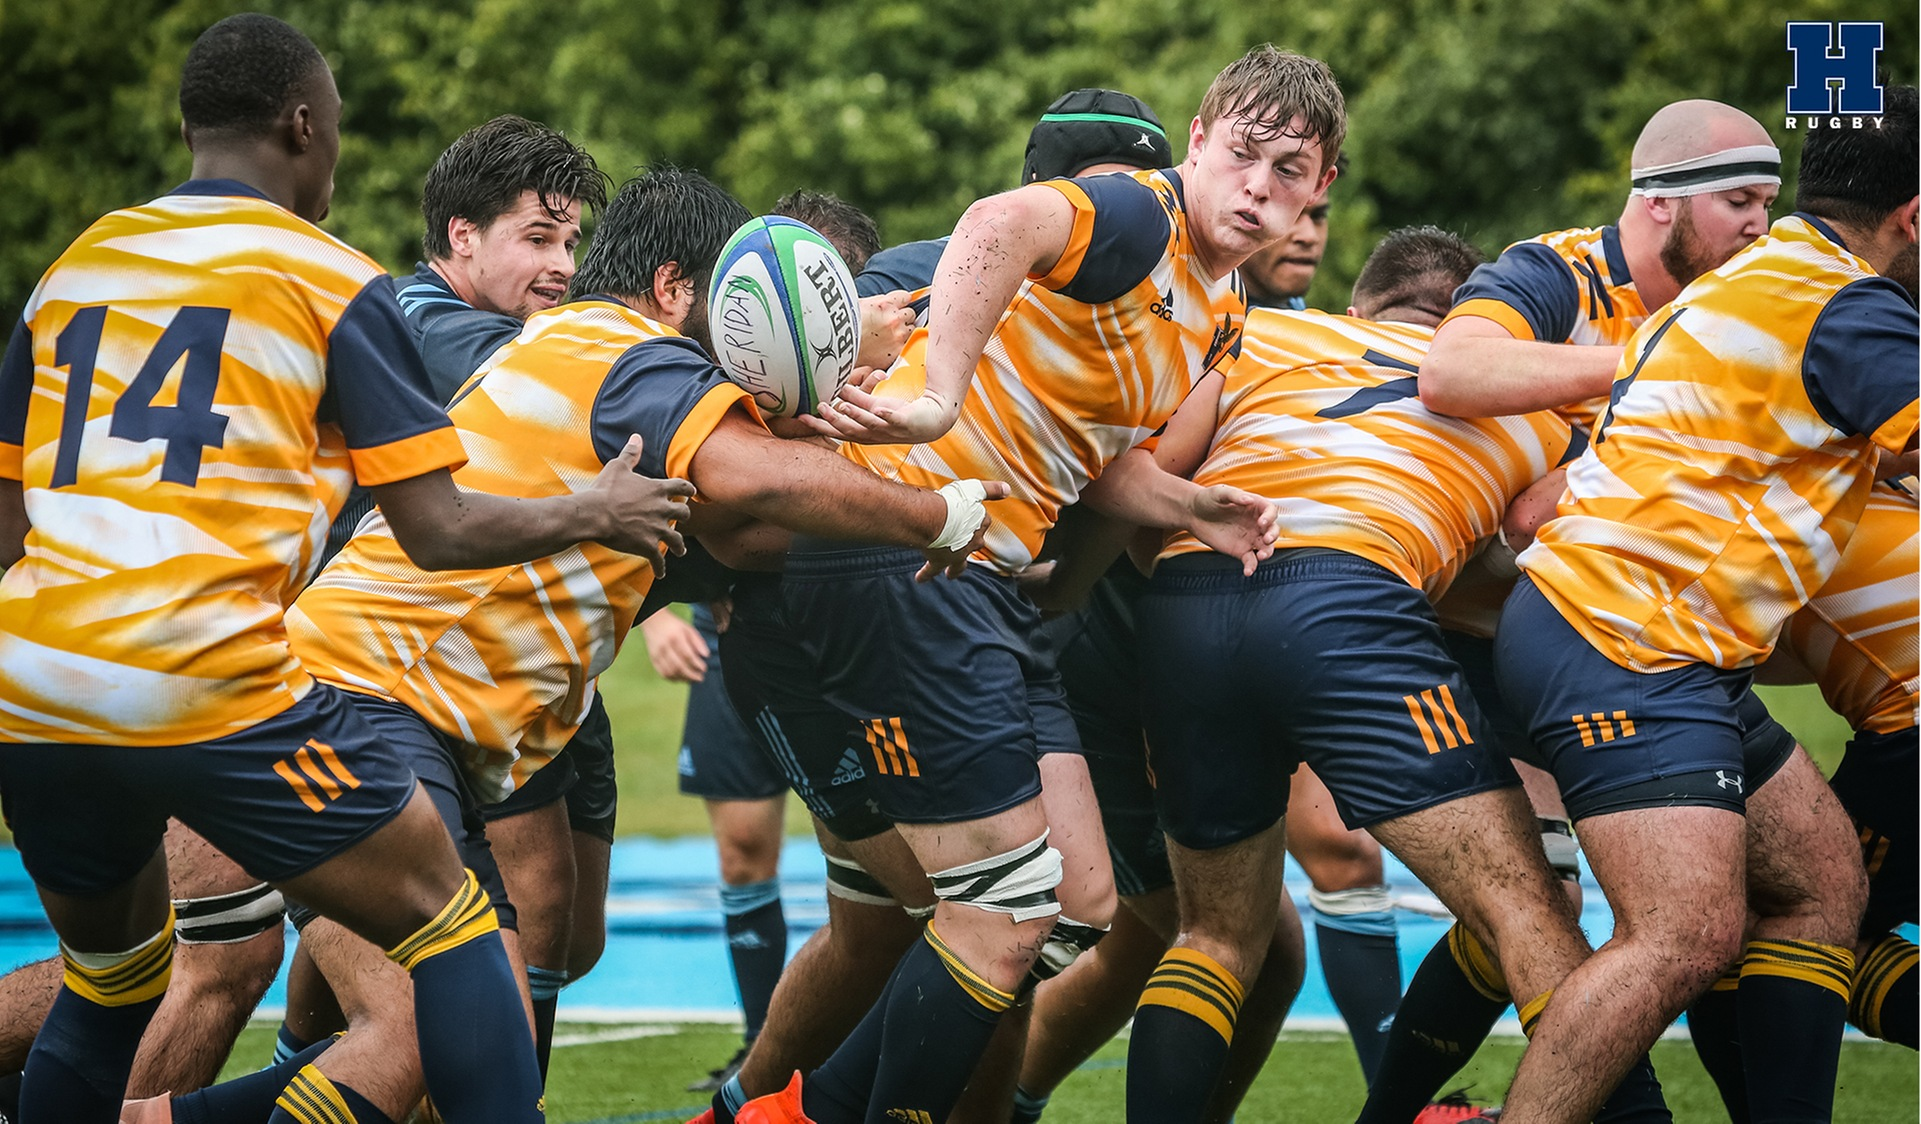 Men's Rugby Face Tough Test in OCAA Semifinal Match